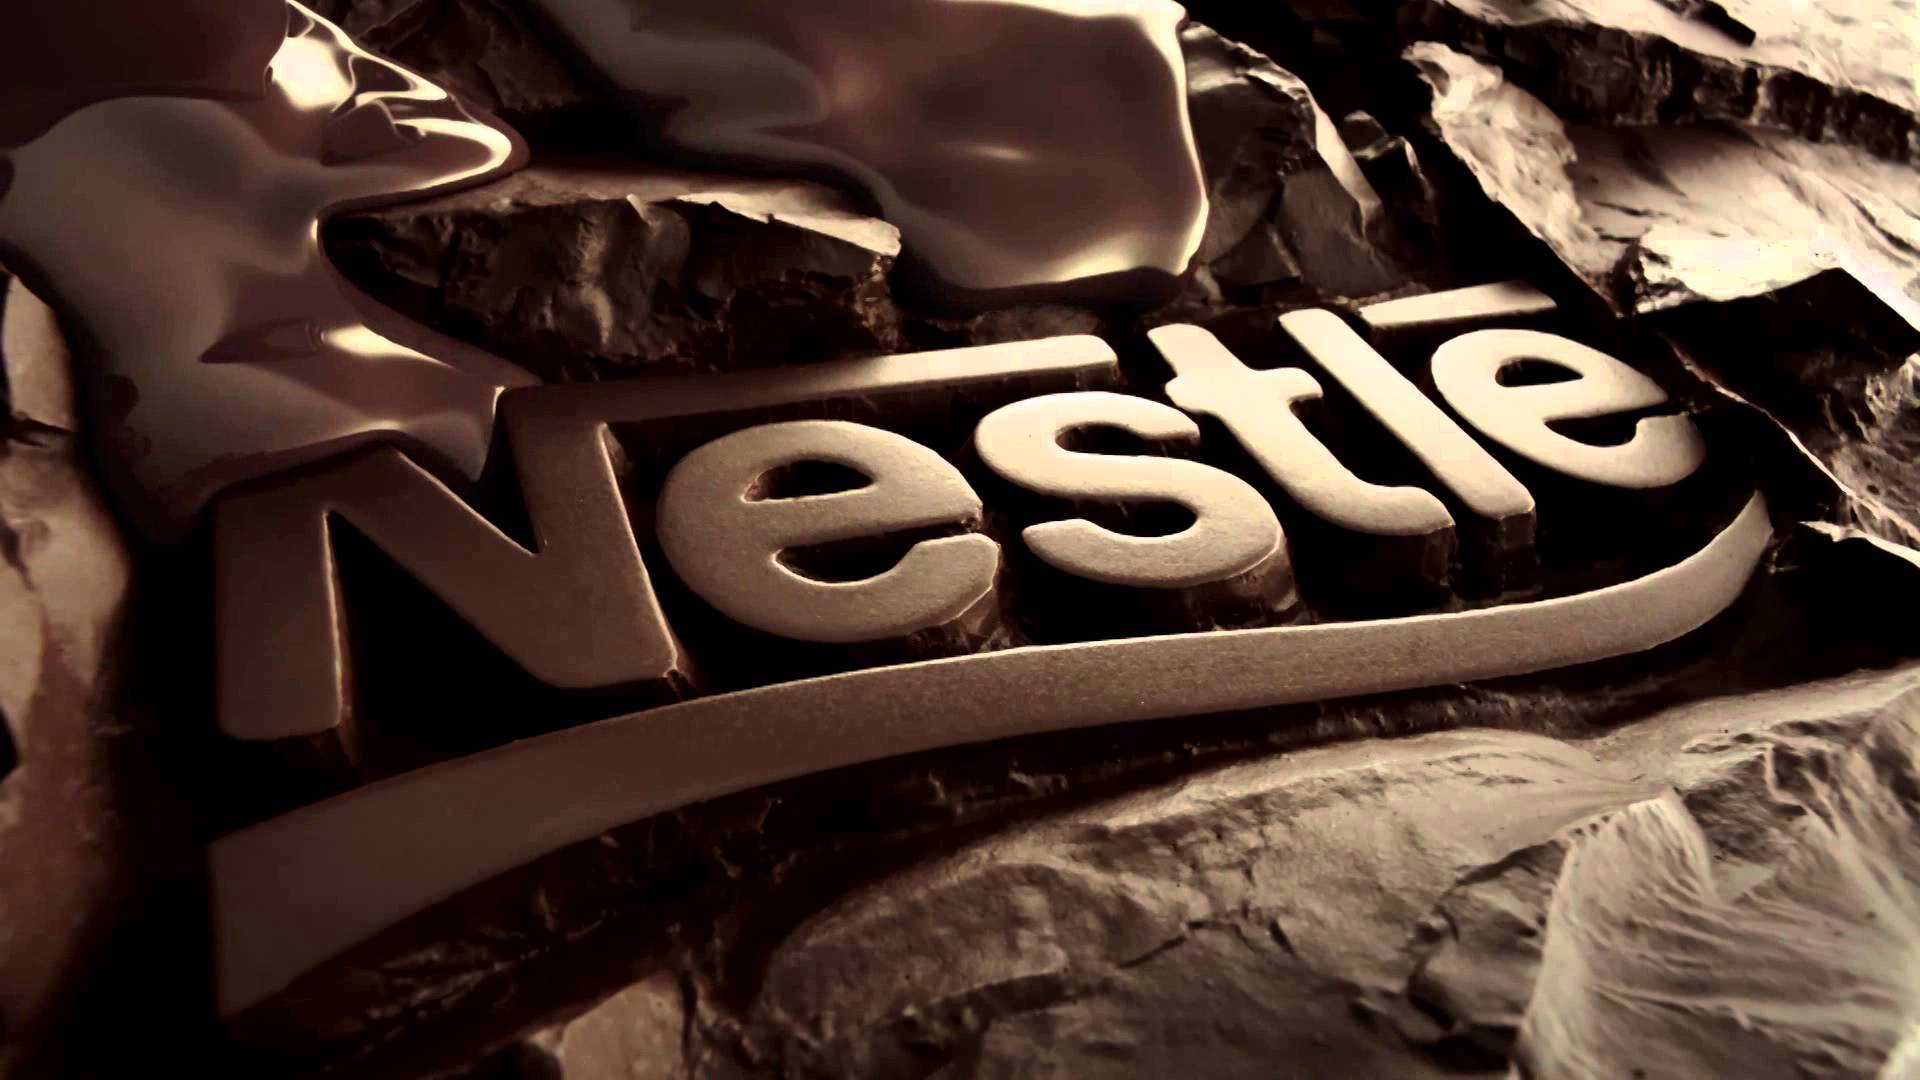 Nestle Wallpapers and Background Images   stmednet 1920x1080